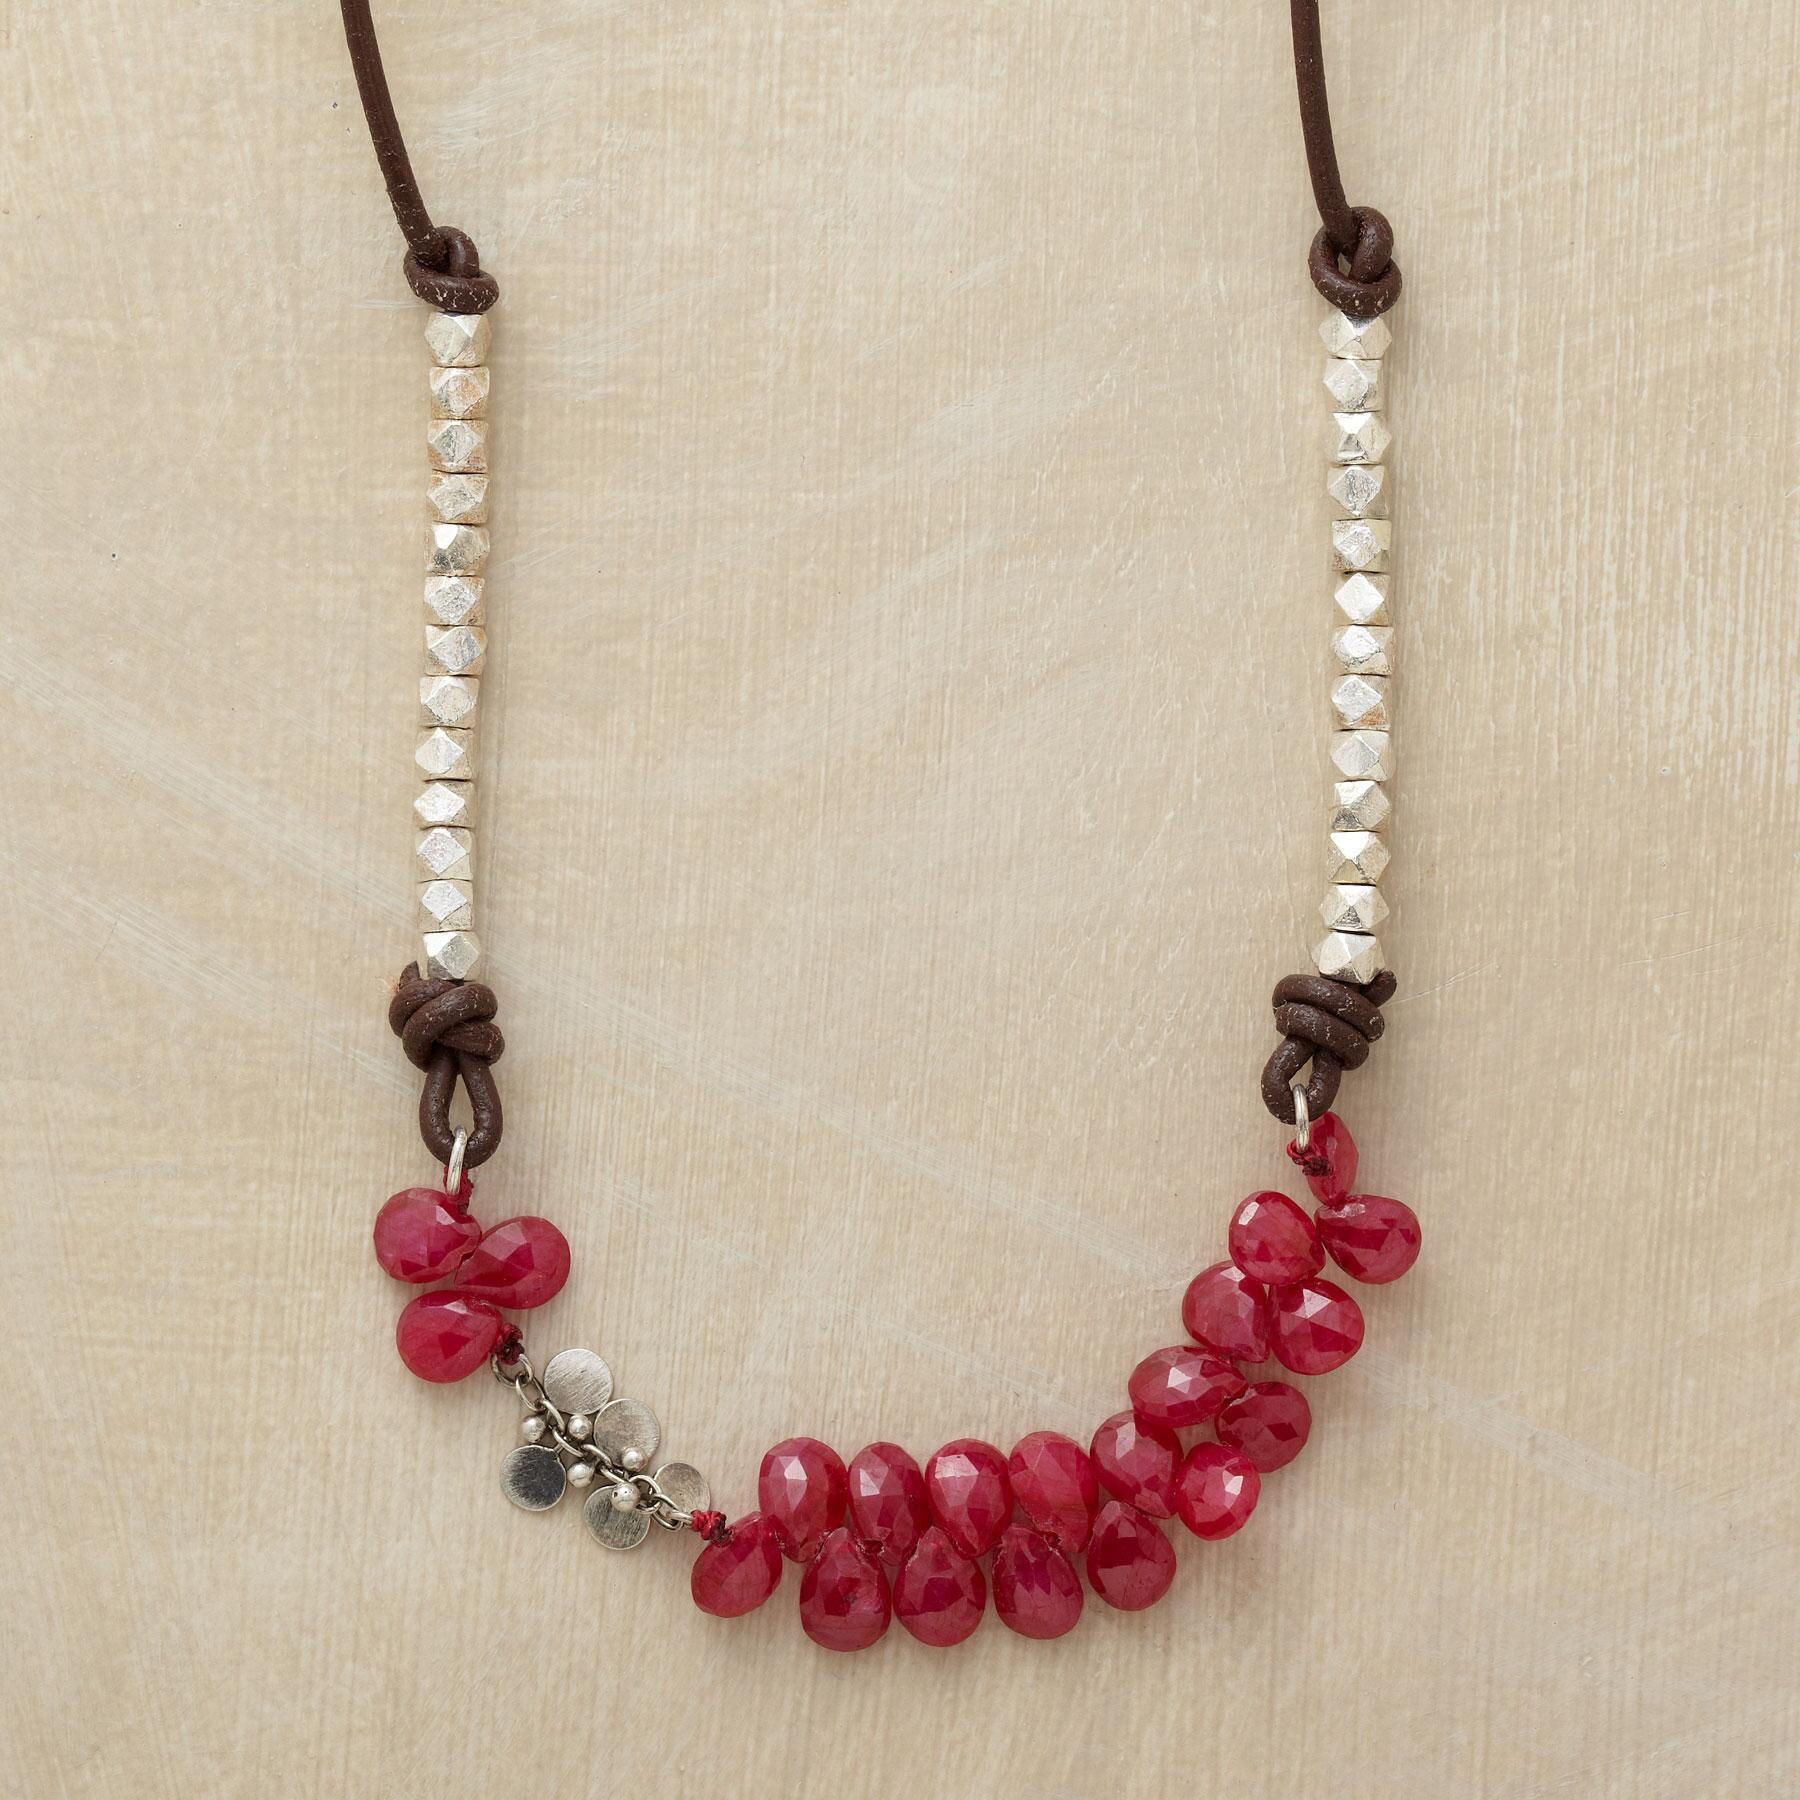 RUBIES AND MORE NECKLACE: View 1